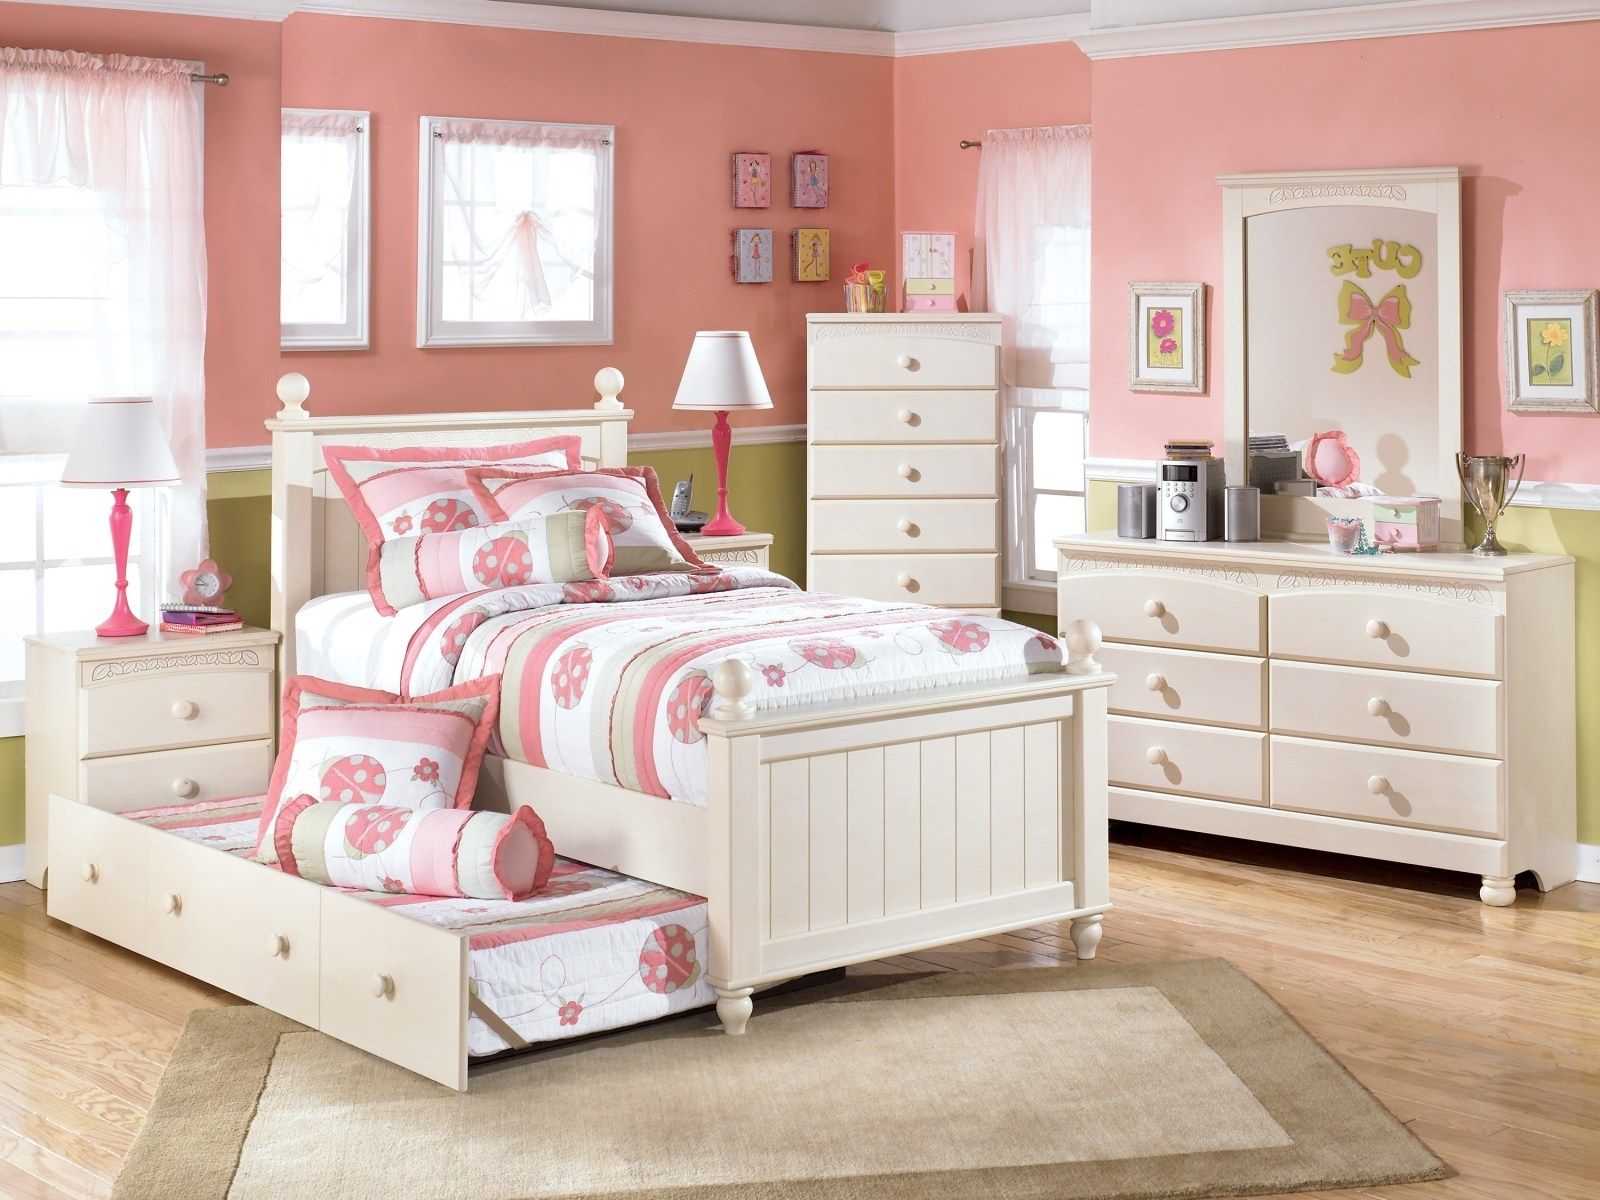 Kids Bedroom Girls Bedroom Sets With Slide Unique Pink Toddler In Kids Bedroom  Furniture Sets Build